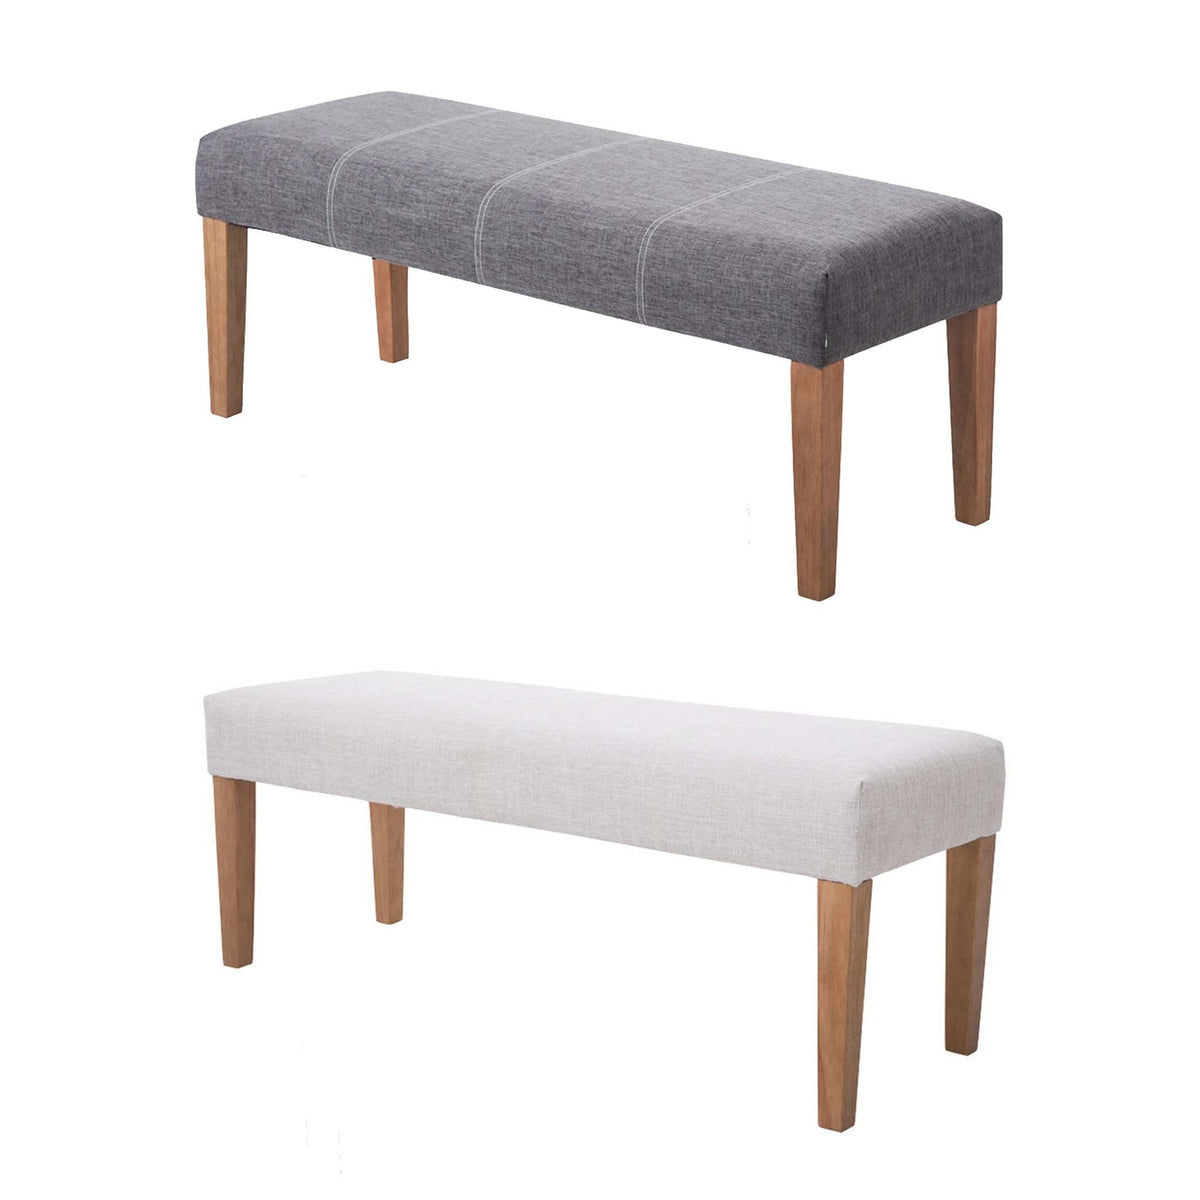 The Zara Fabric Bedroom Bench from Roseland Furniture